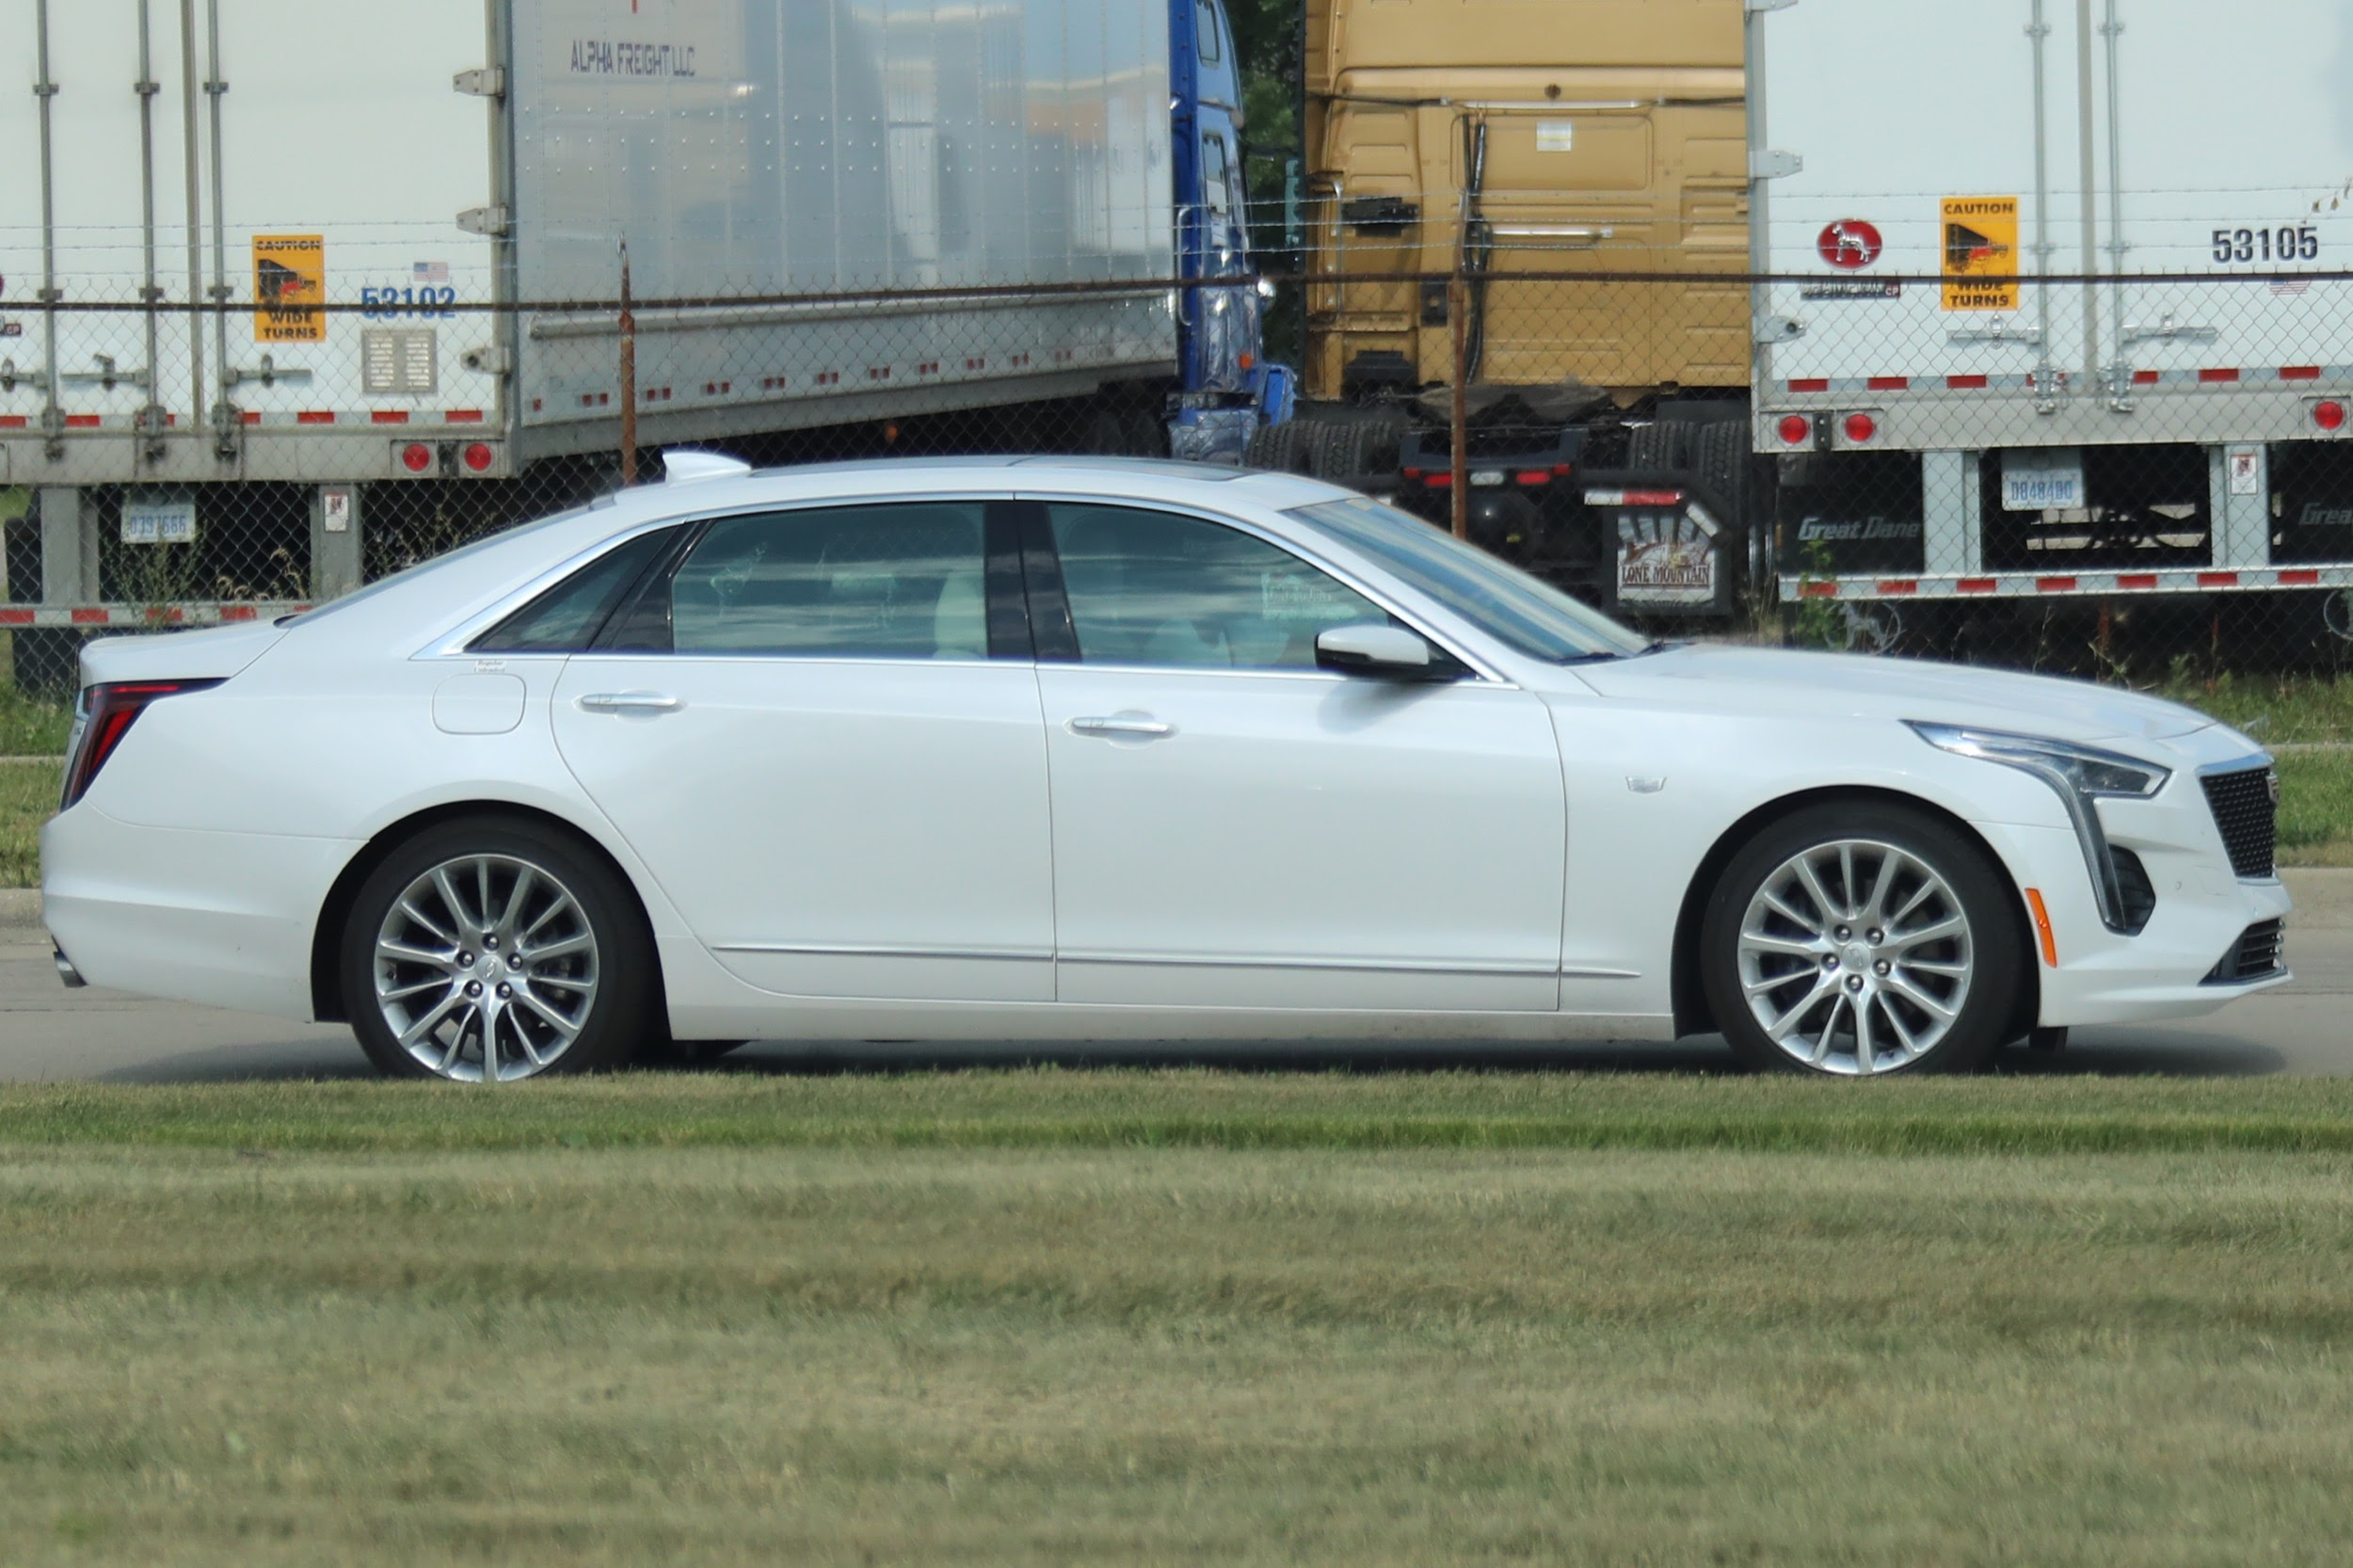 2019 CT6 Premium Luxury In Crystal White: Photo Gallery ...